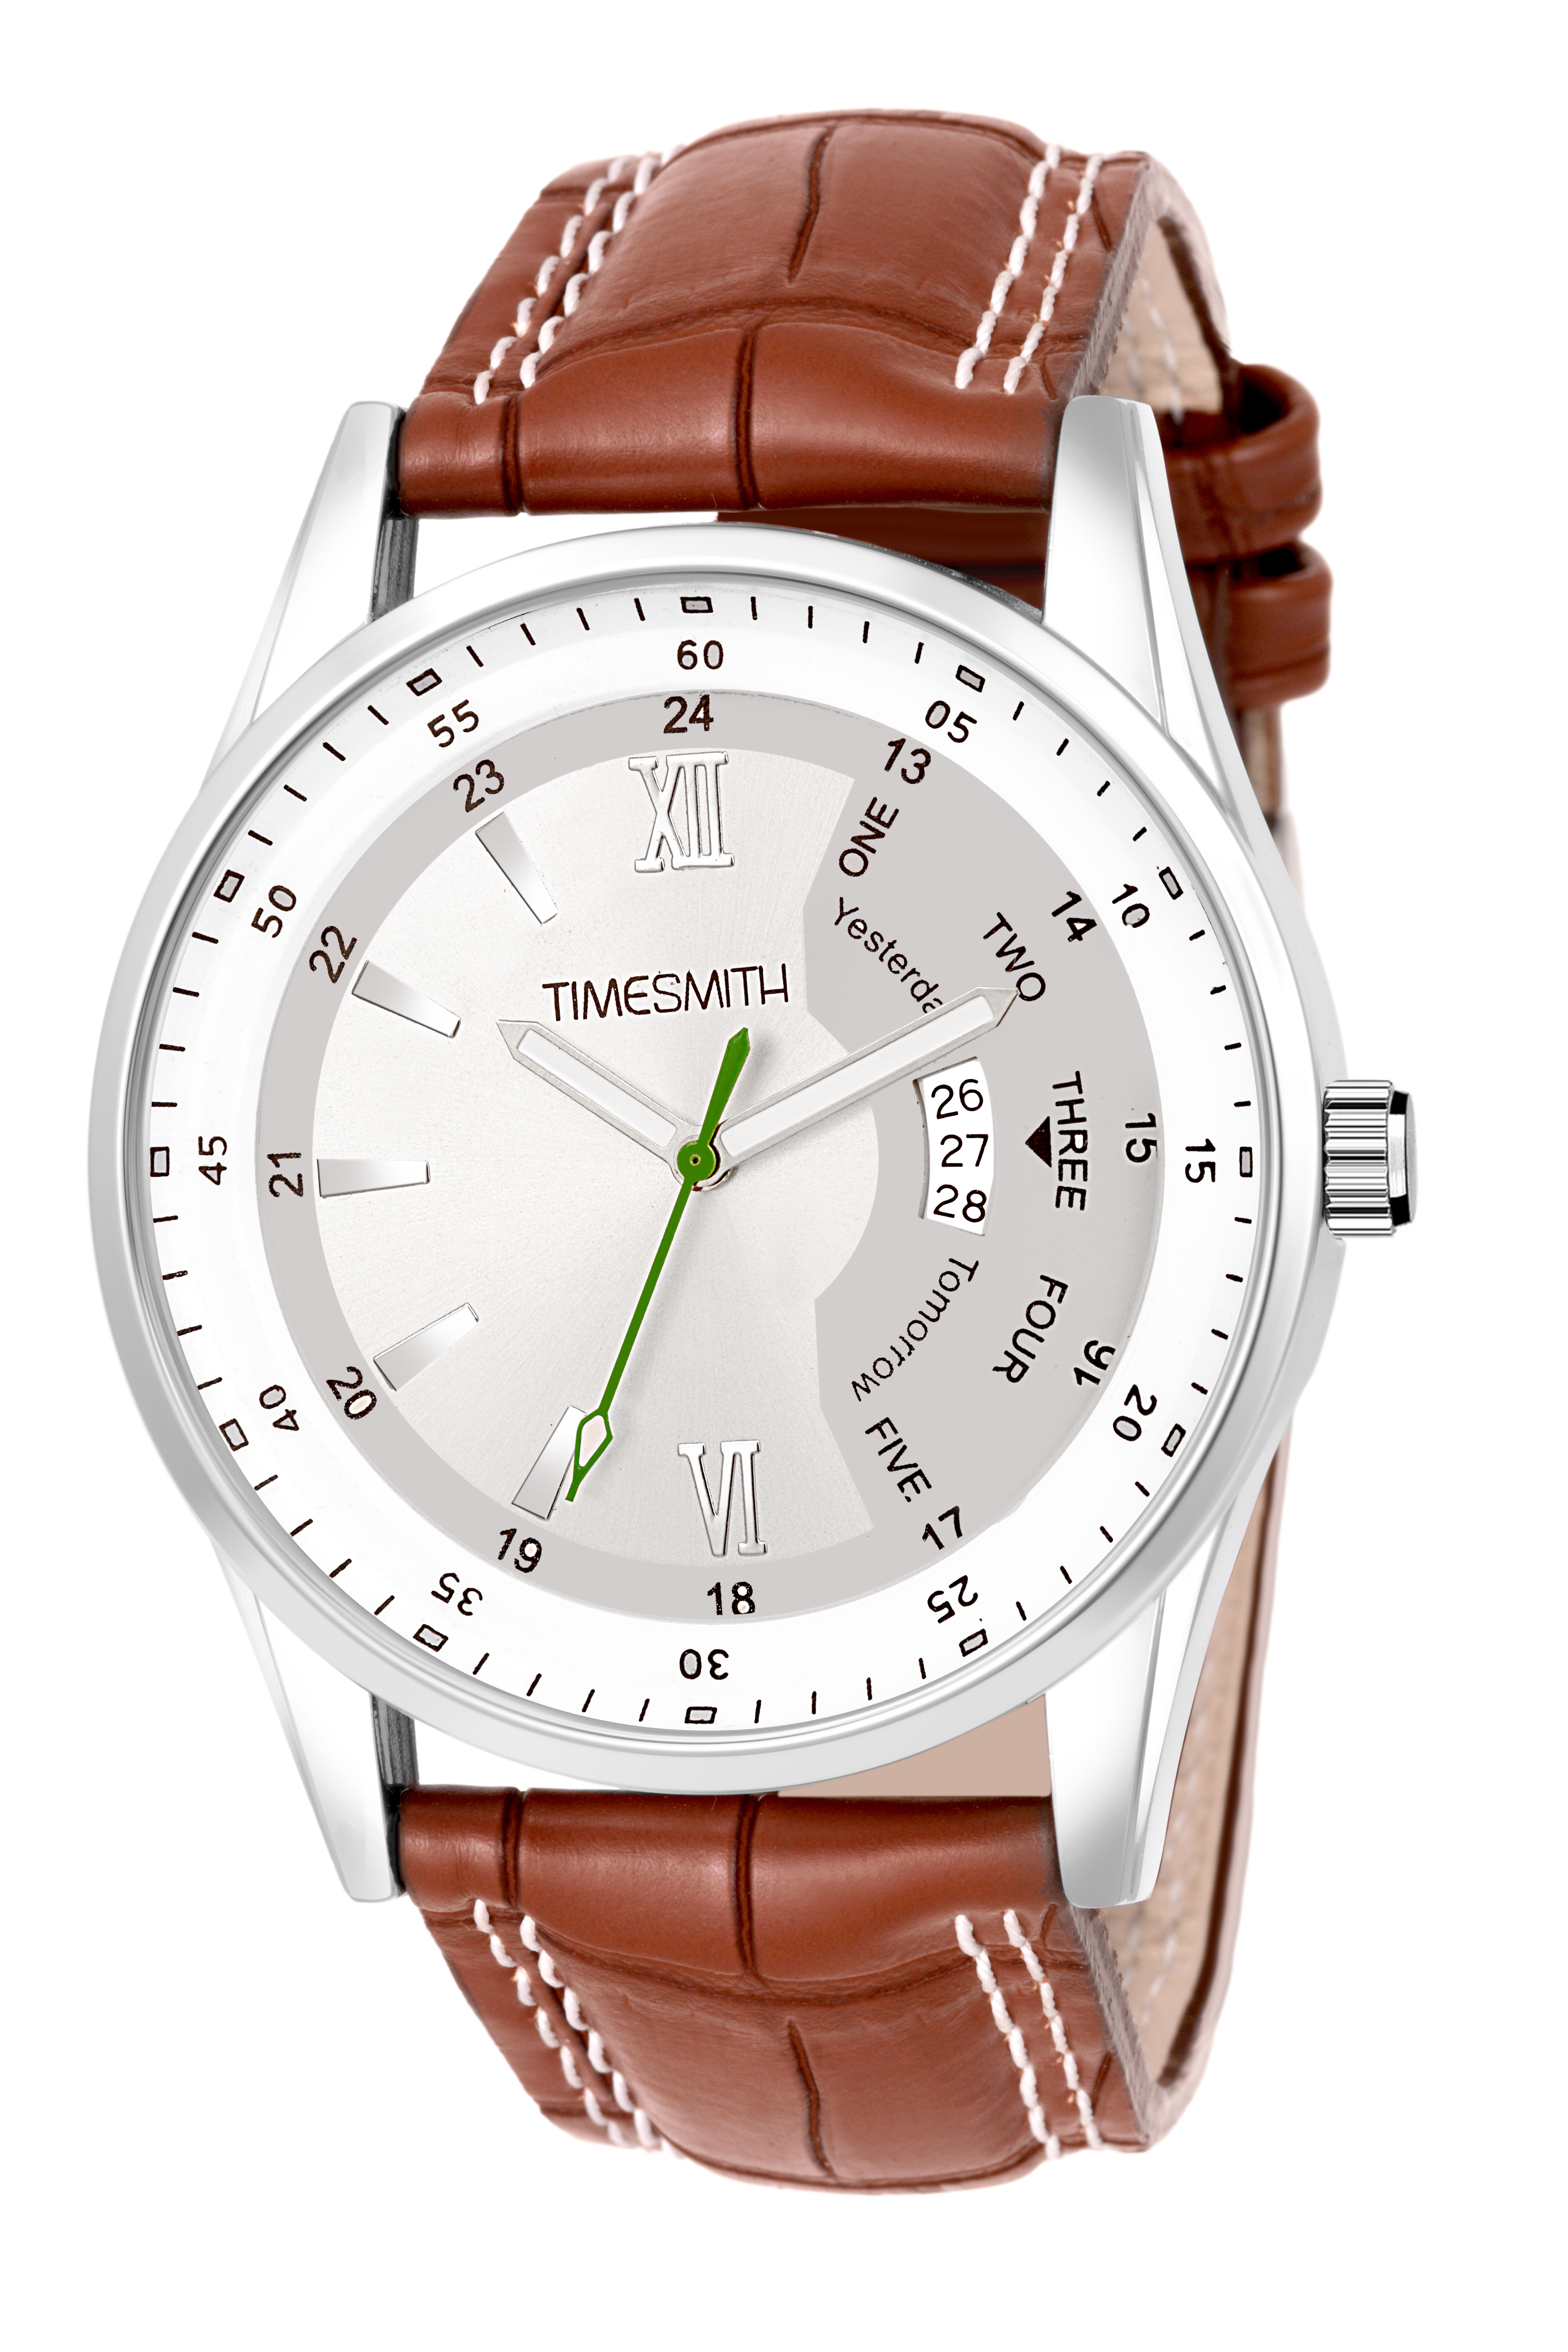 Timesmith   Timesmith White Dial Brown Leather Strap Day Date Men's Watch TSC-126 For Men